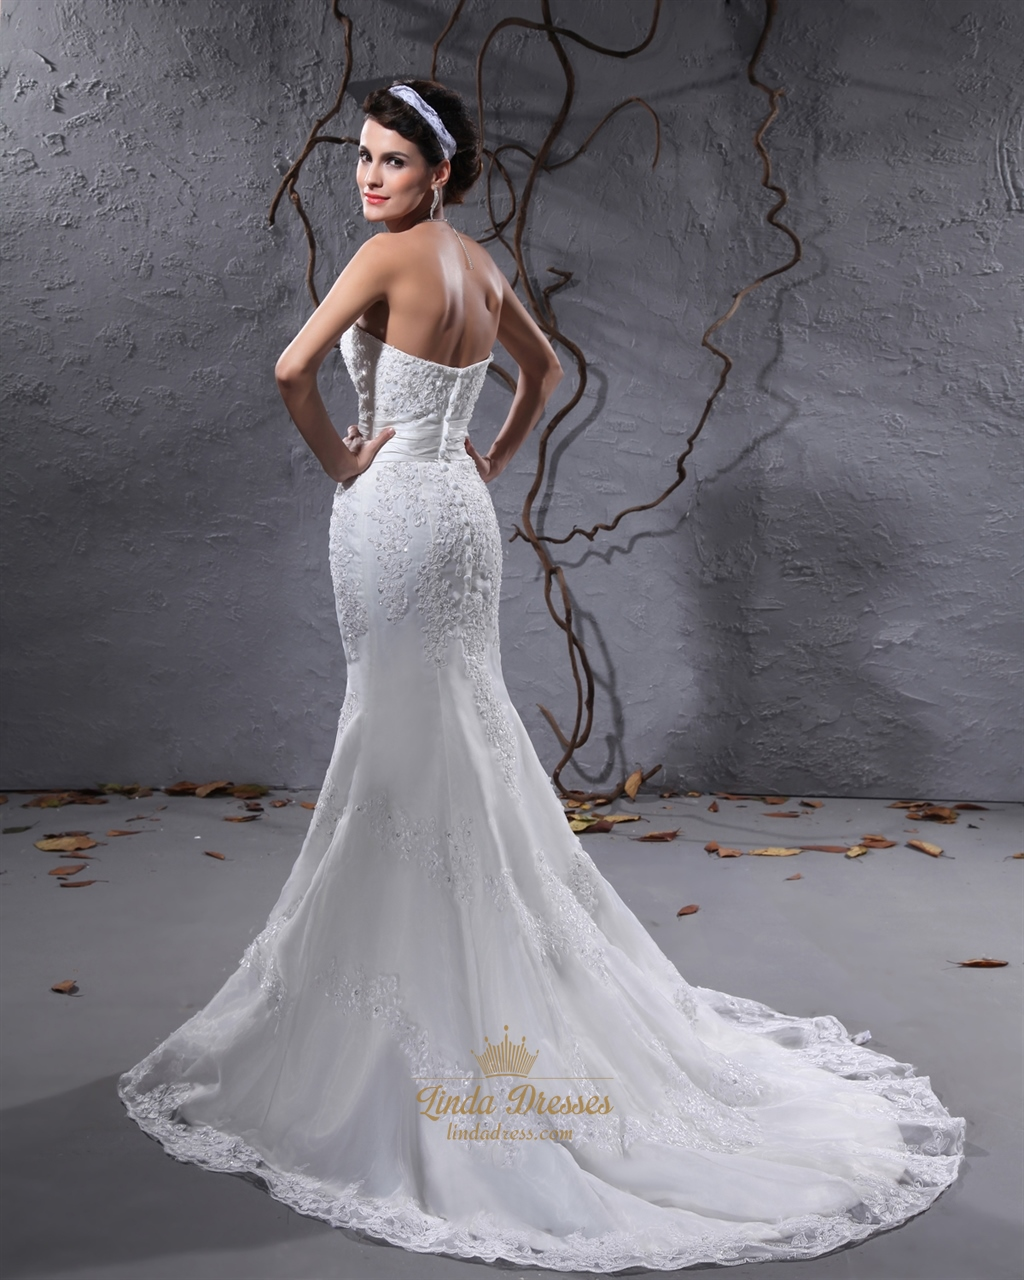 Ivory Strapless Sweetheart Mermaid Beaded Lace Applique